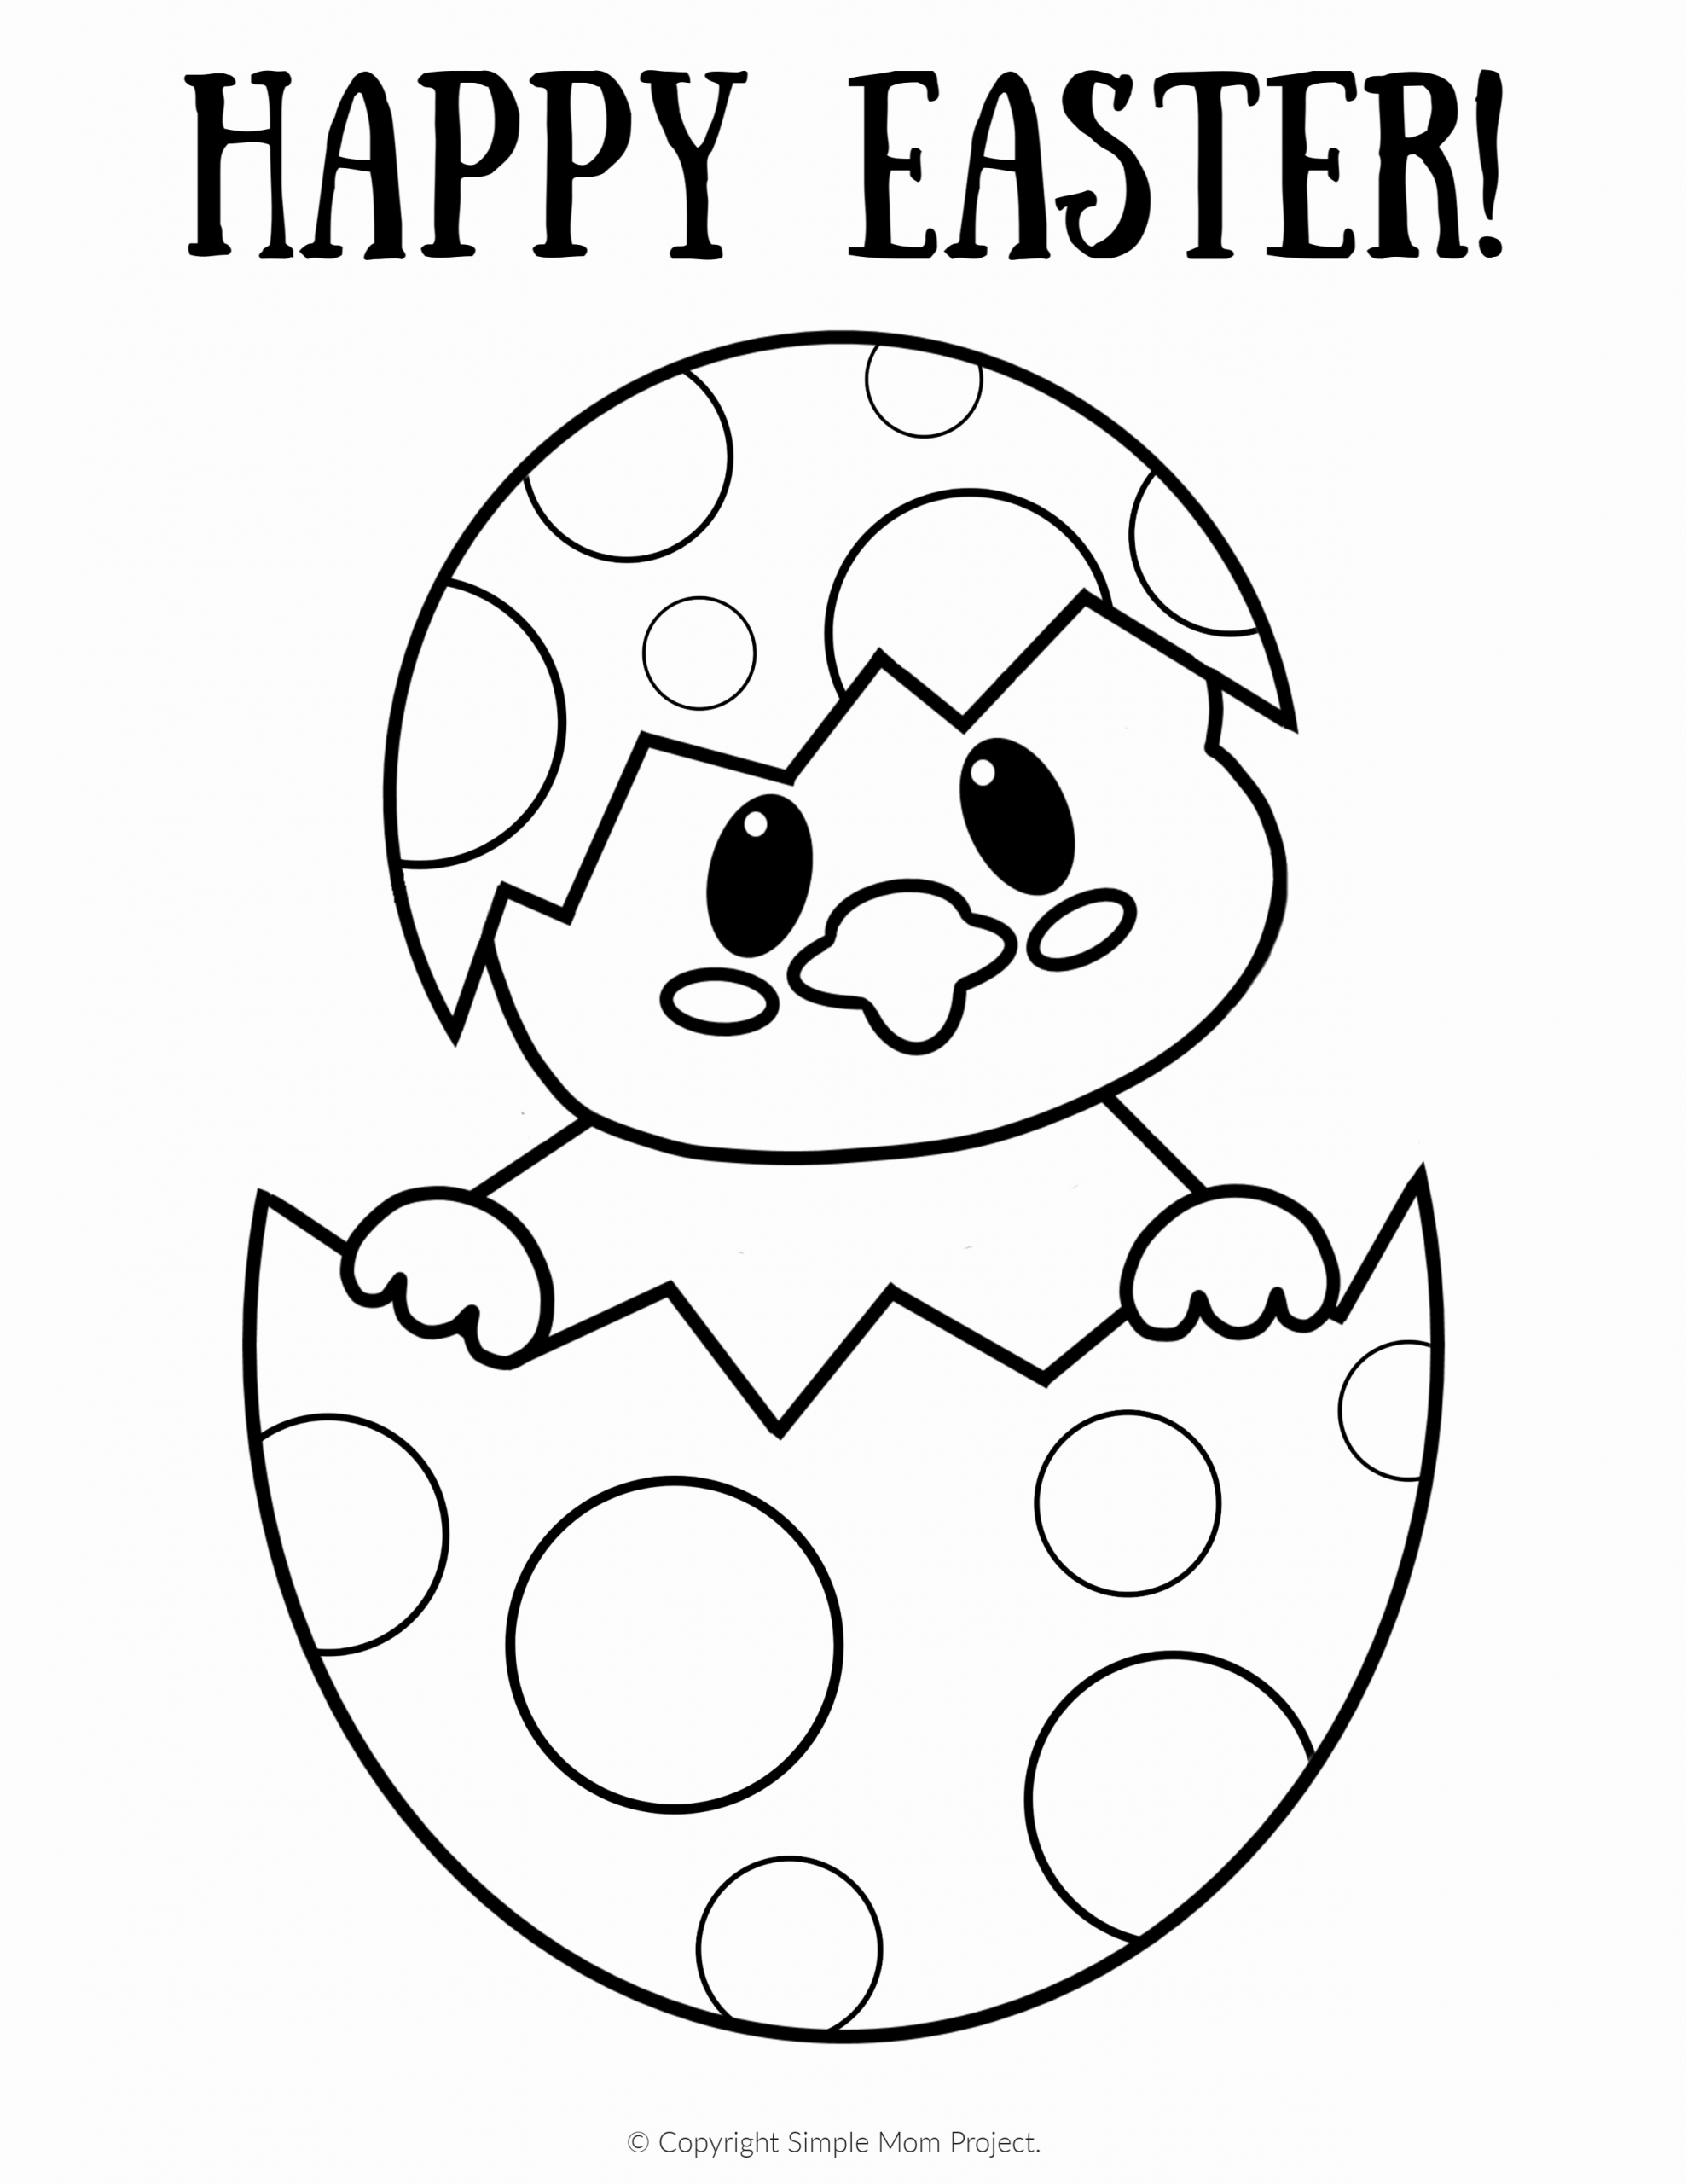 Printable Easter Eggs Coloring Pages Inspirational Easy